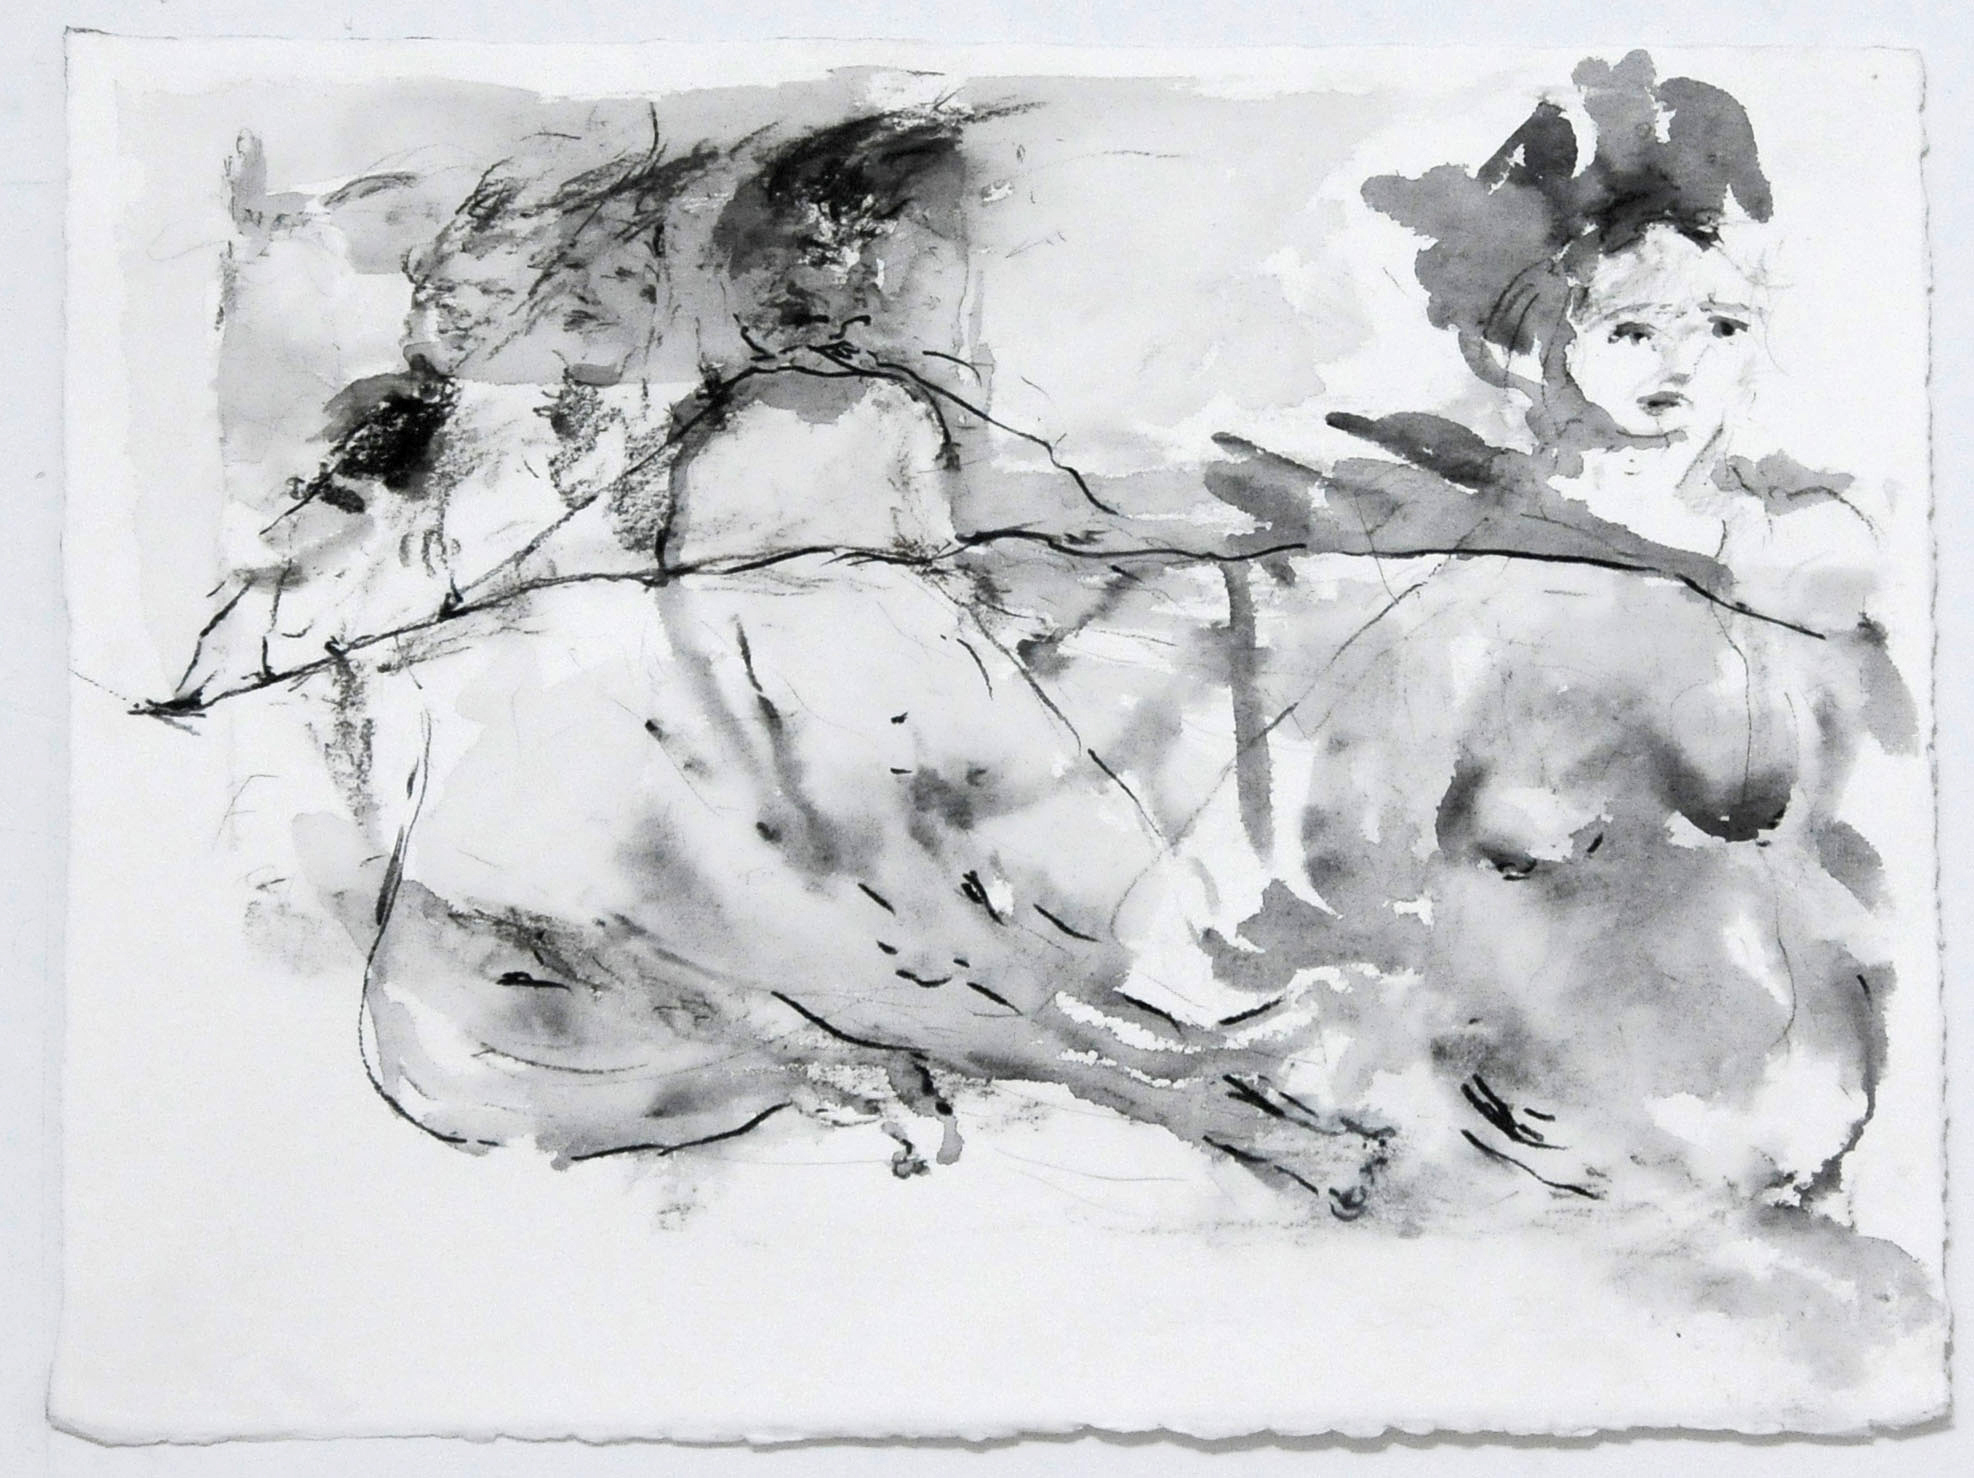 Sarah Creagen, Oh donÔÇÖt worry (loudly), 10 x 14 inches, Graphite and ink on paper, 2015.jpg